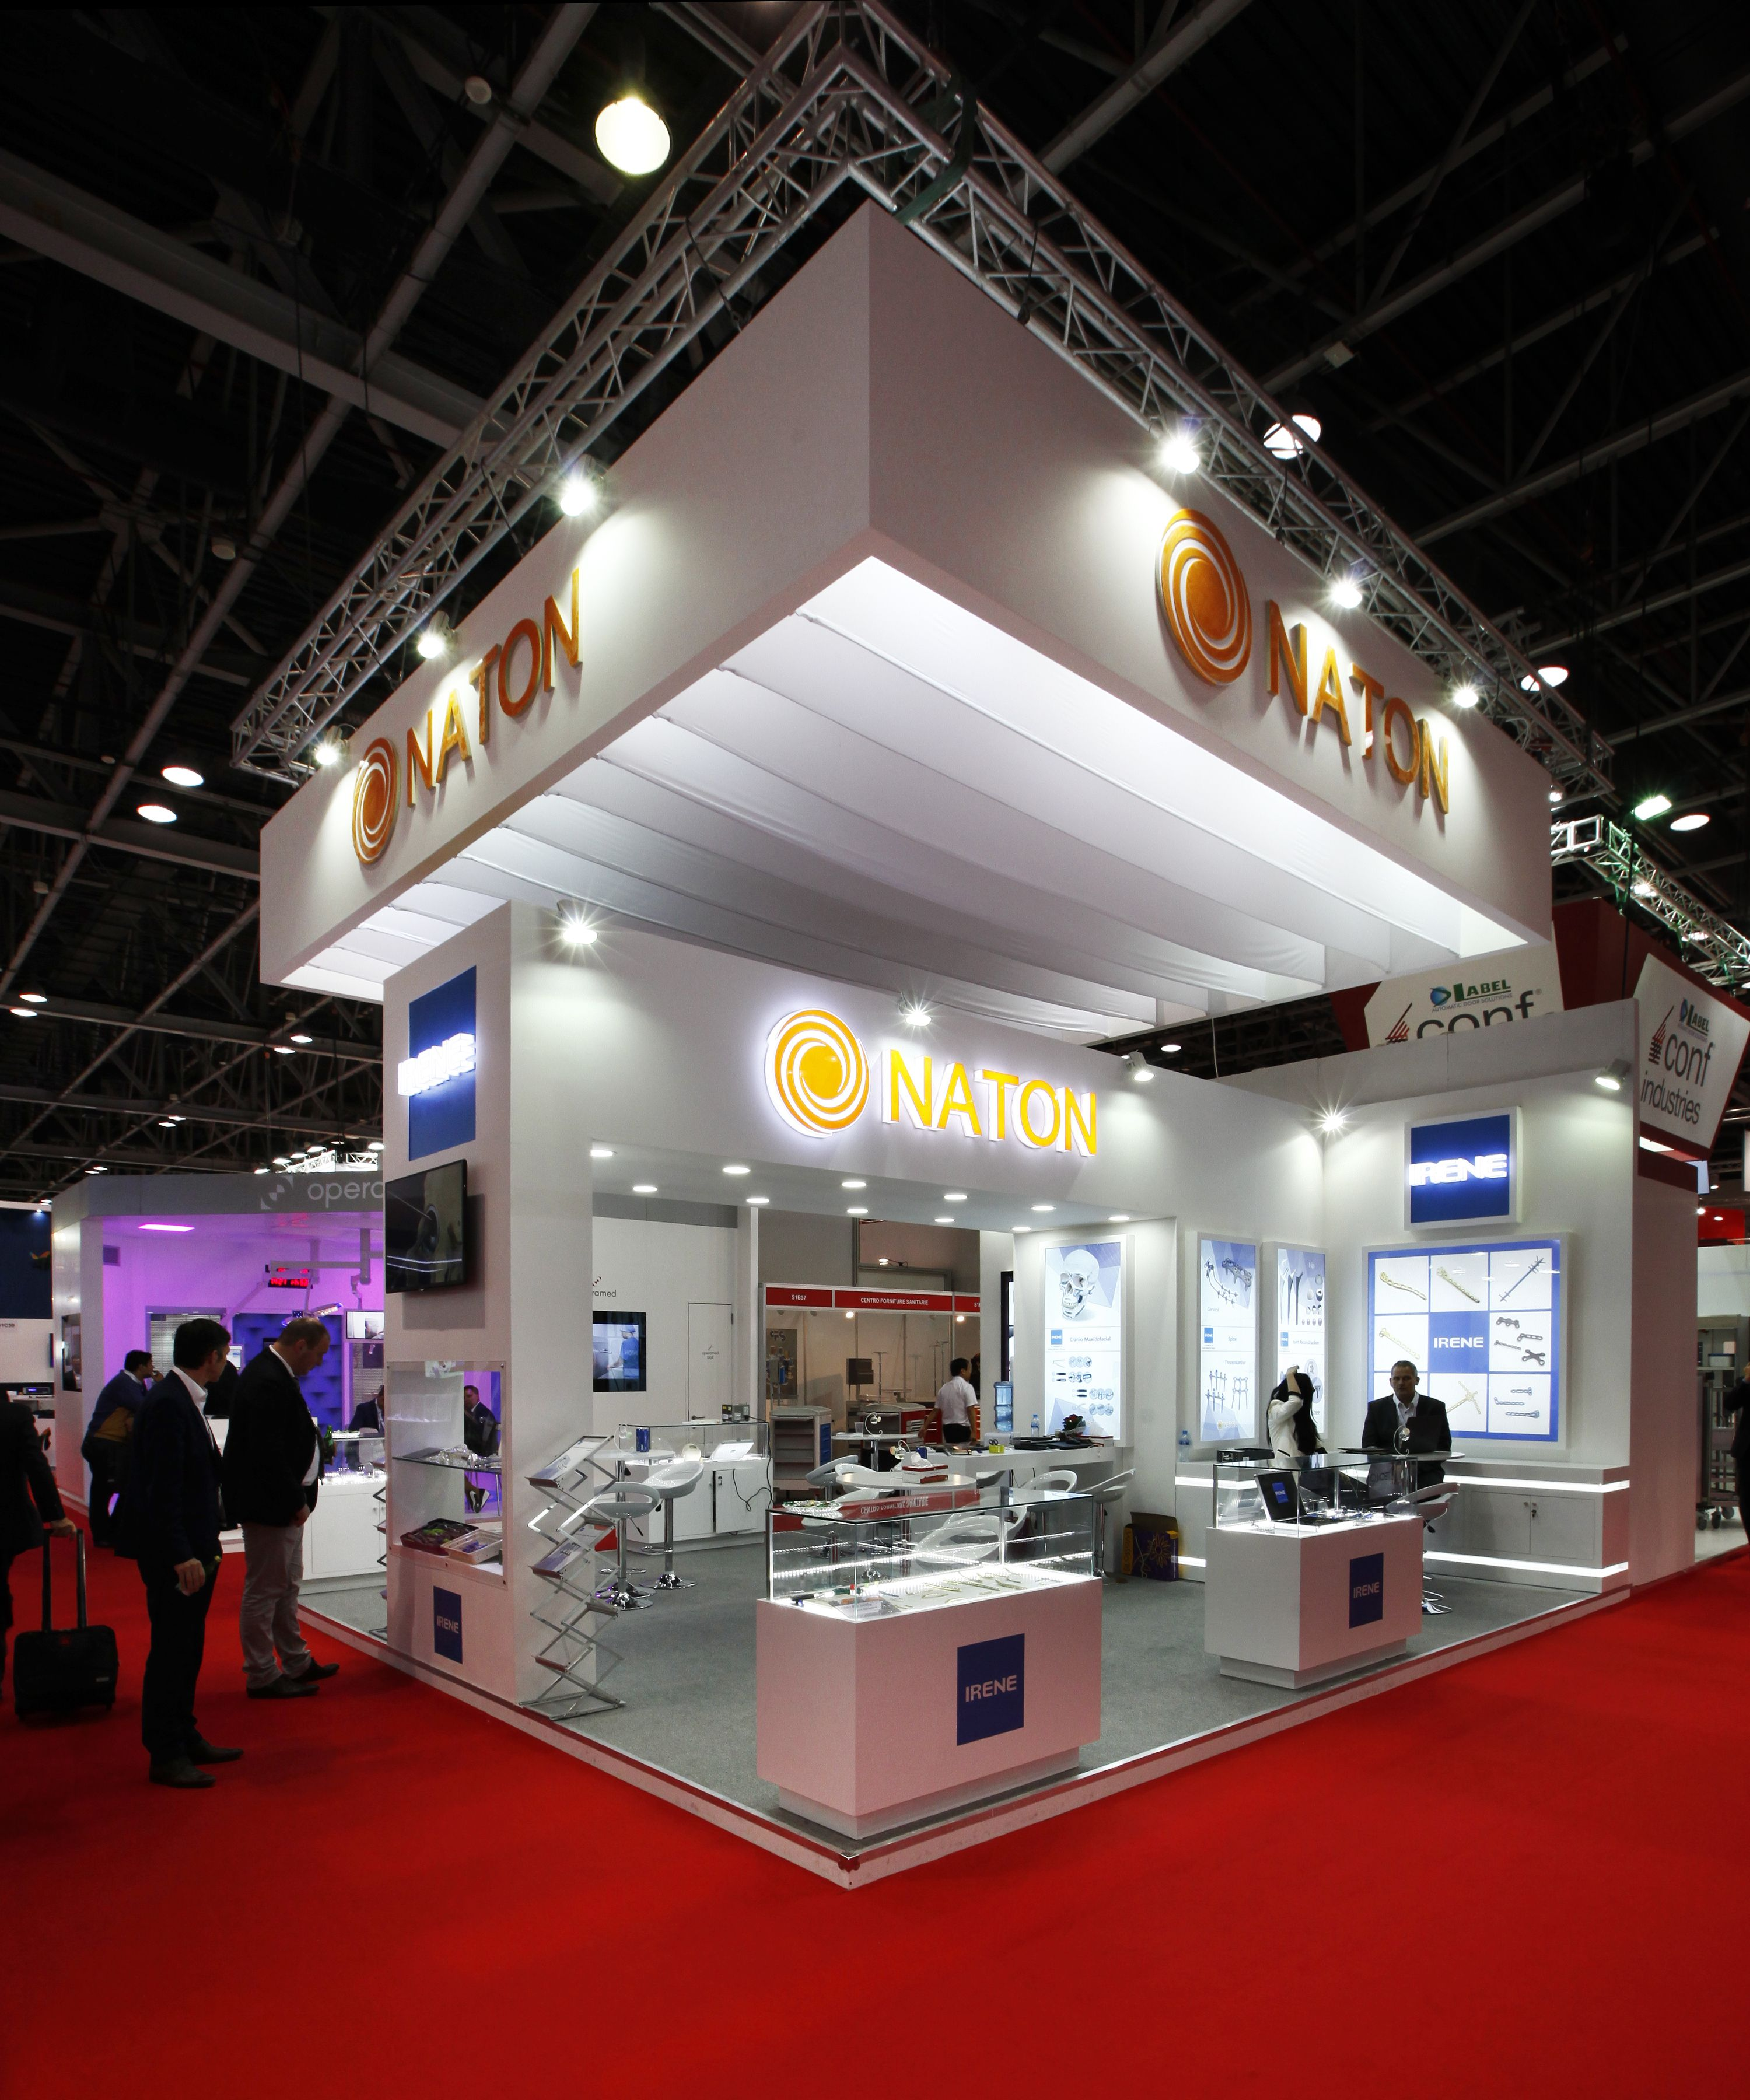 Exhibition Stand Circle : Circle exhibition services llc